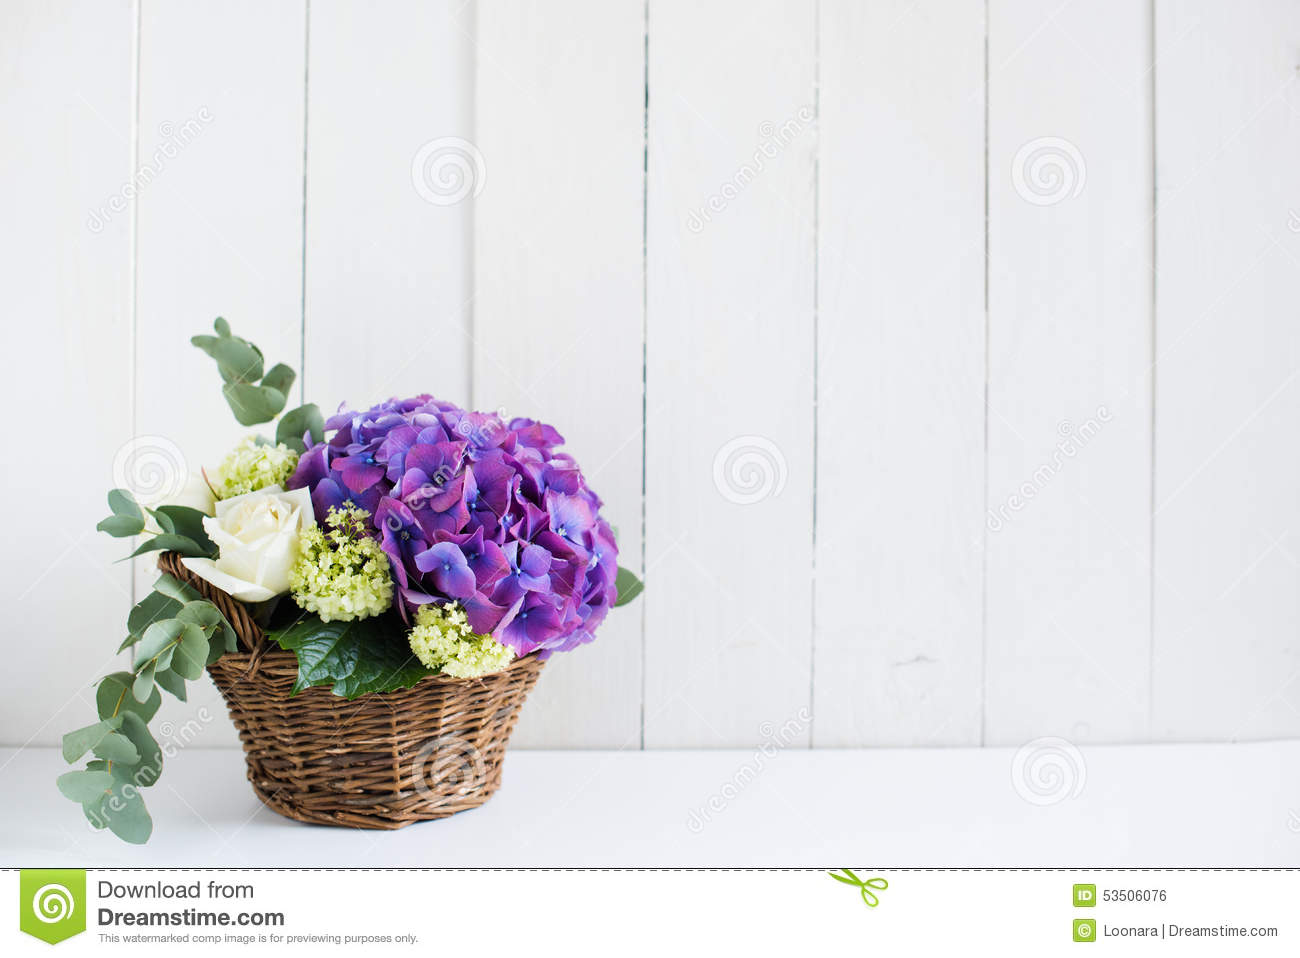 Stock Photo Bouquet Fresh Flowers Big Purple Hydrangeas White Roses Wicker Basket White Wooden Board Vintage Style Image53506076 on rustic barn home plans